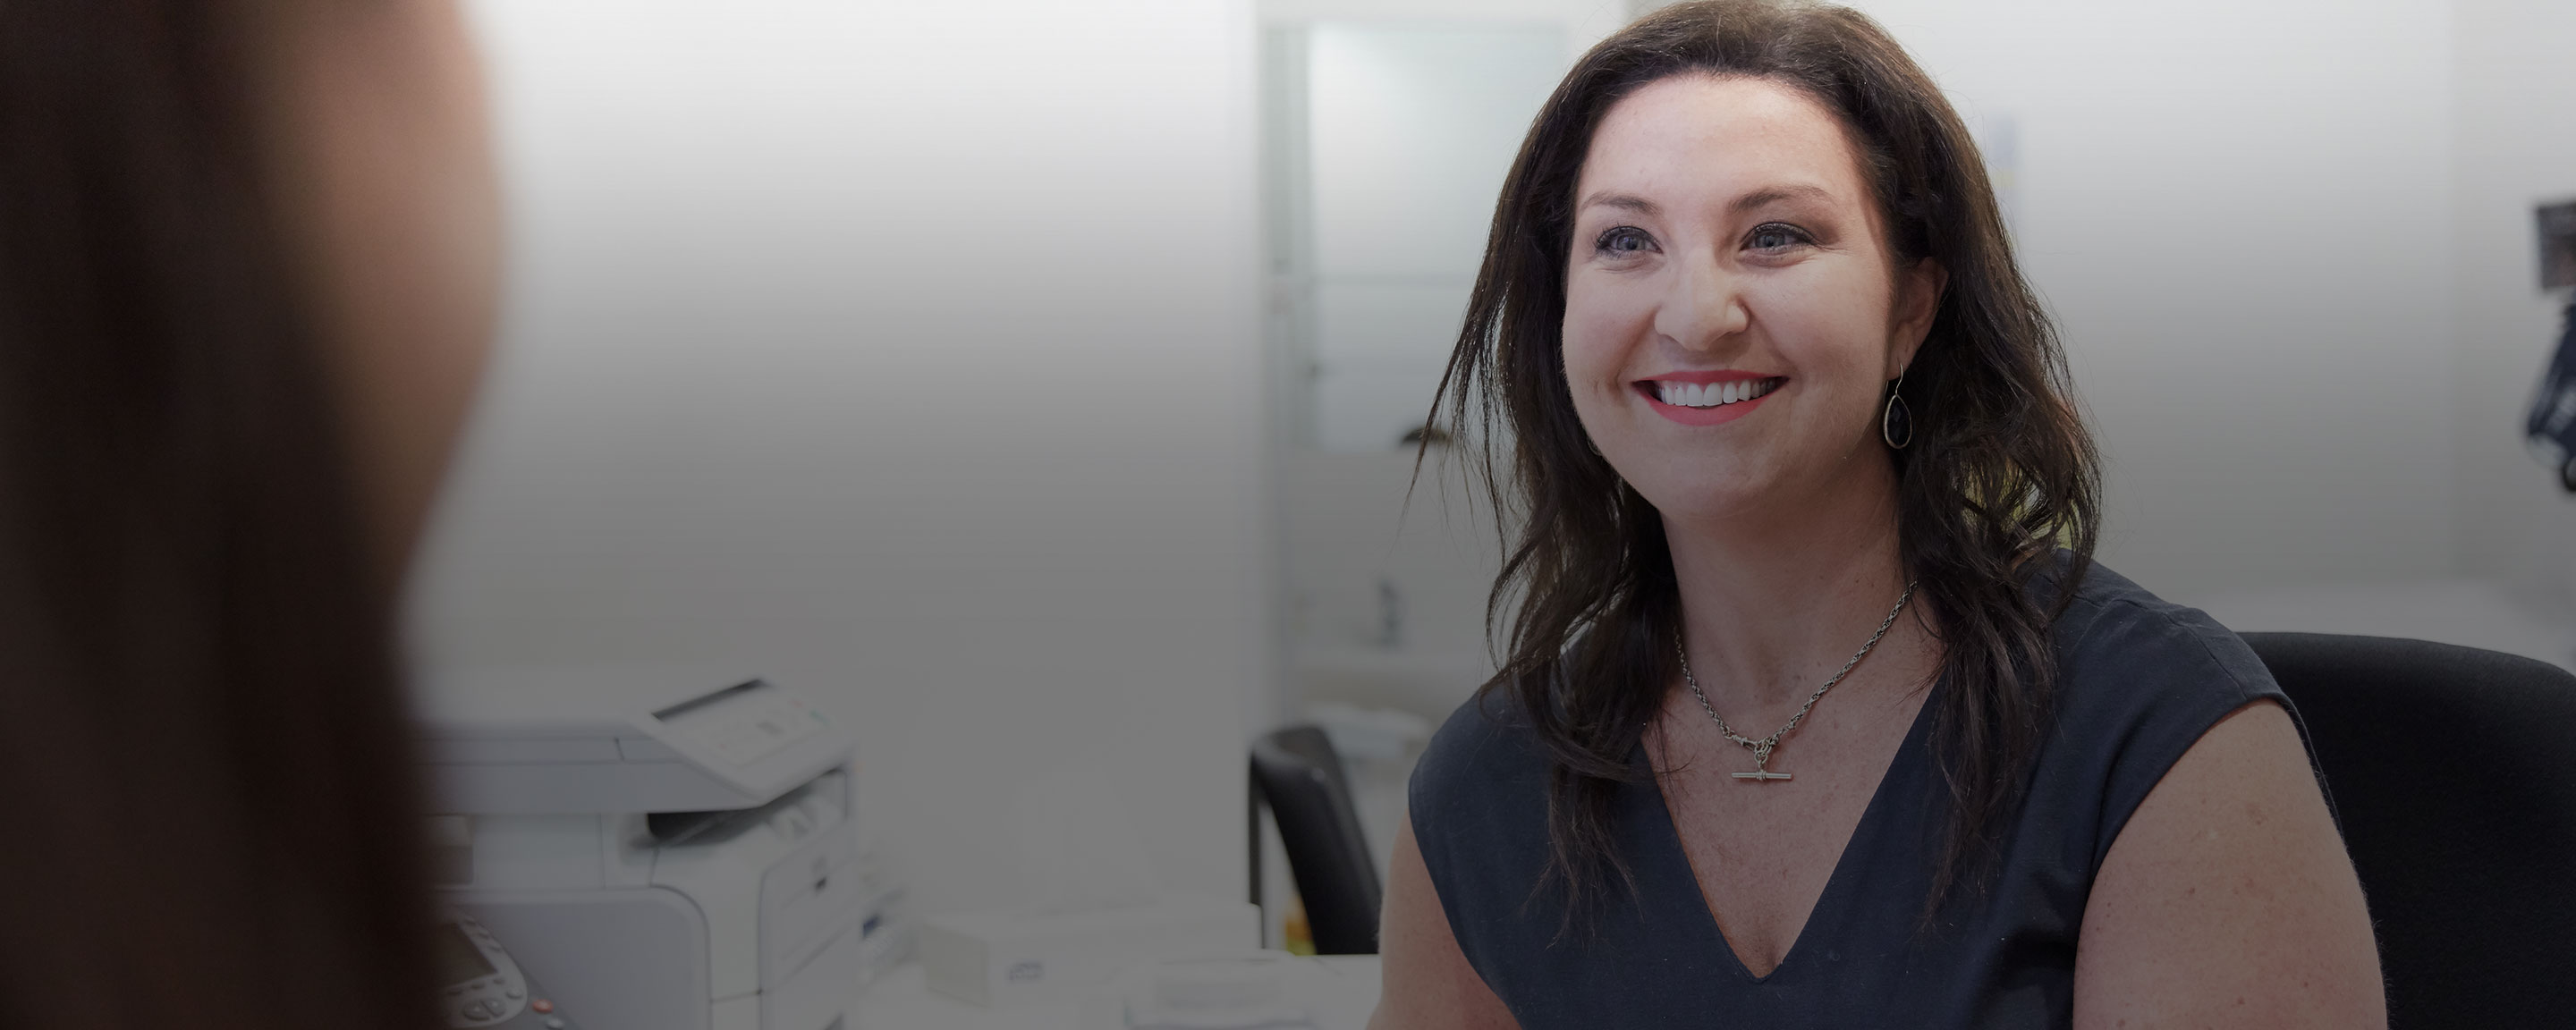 GP with patient